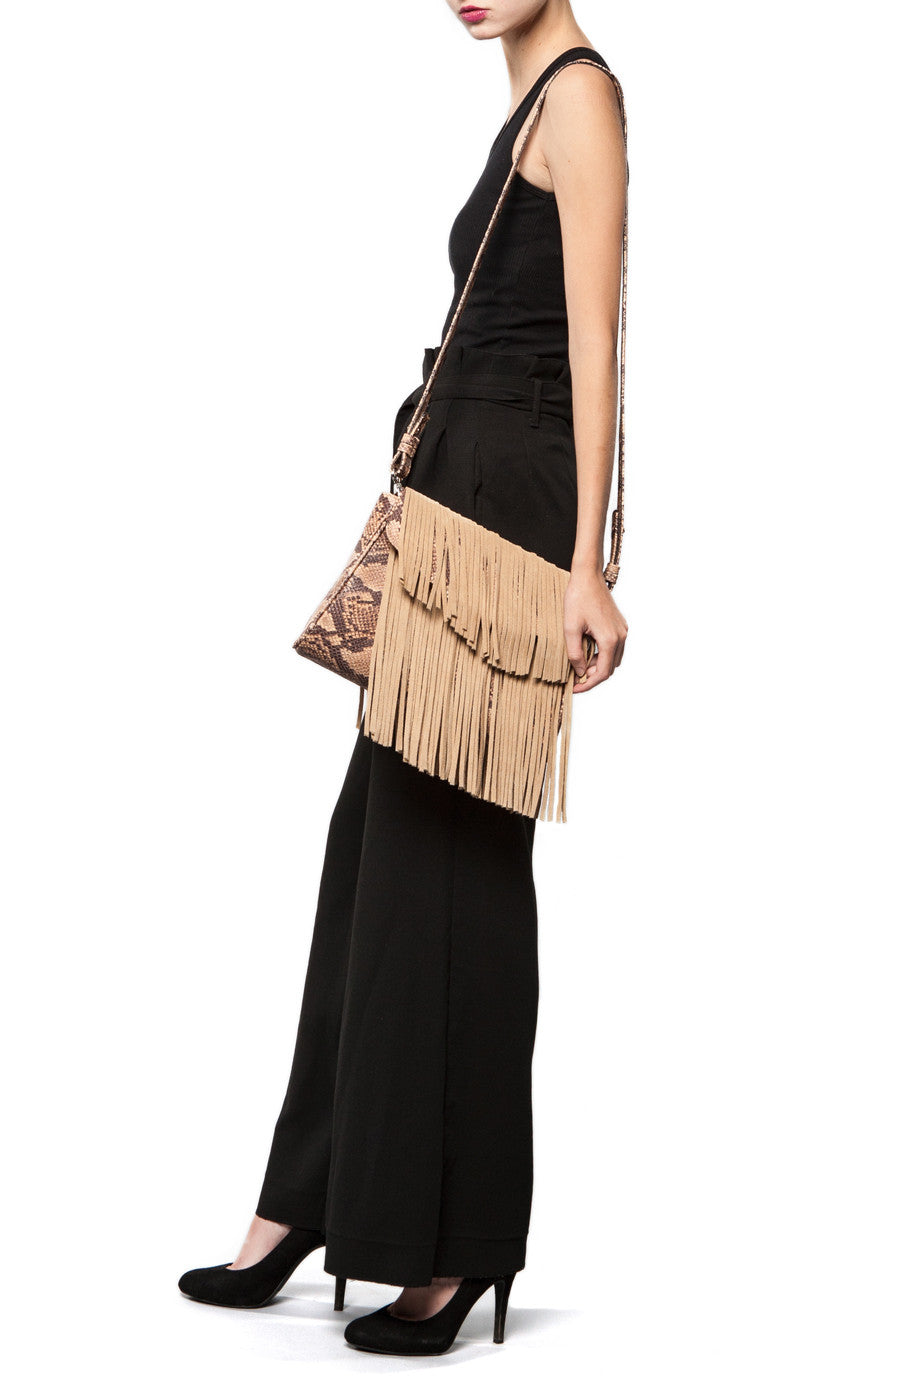 Mel Boteri Faux Python & Suede Fringe Leather 'Taylea' Bag | Model Leather Strap